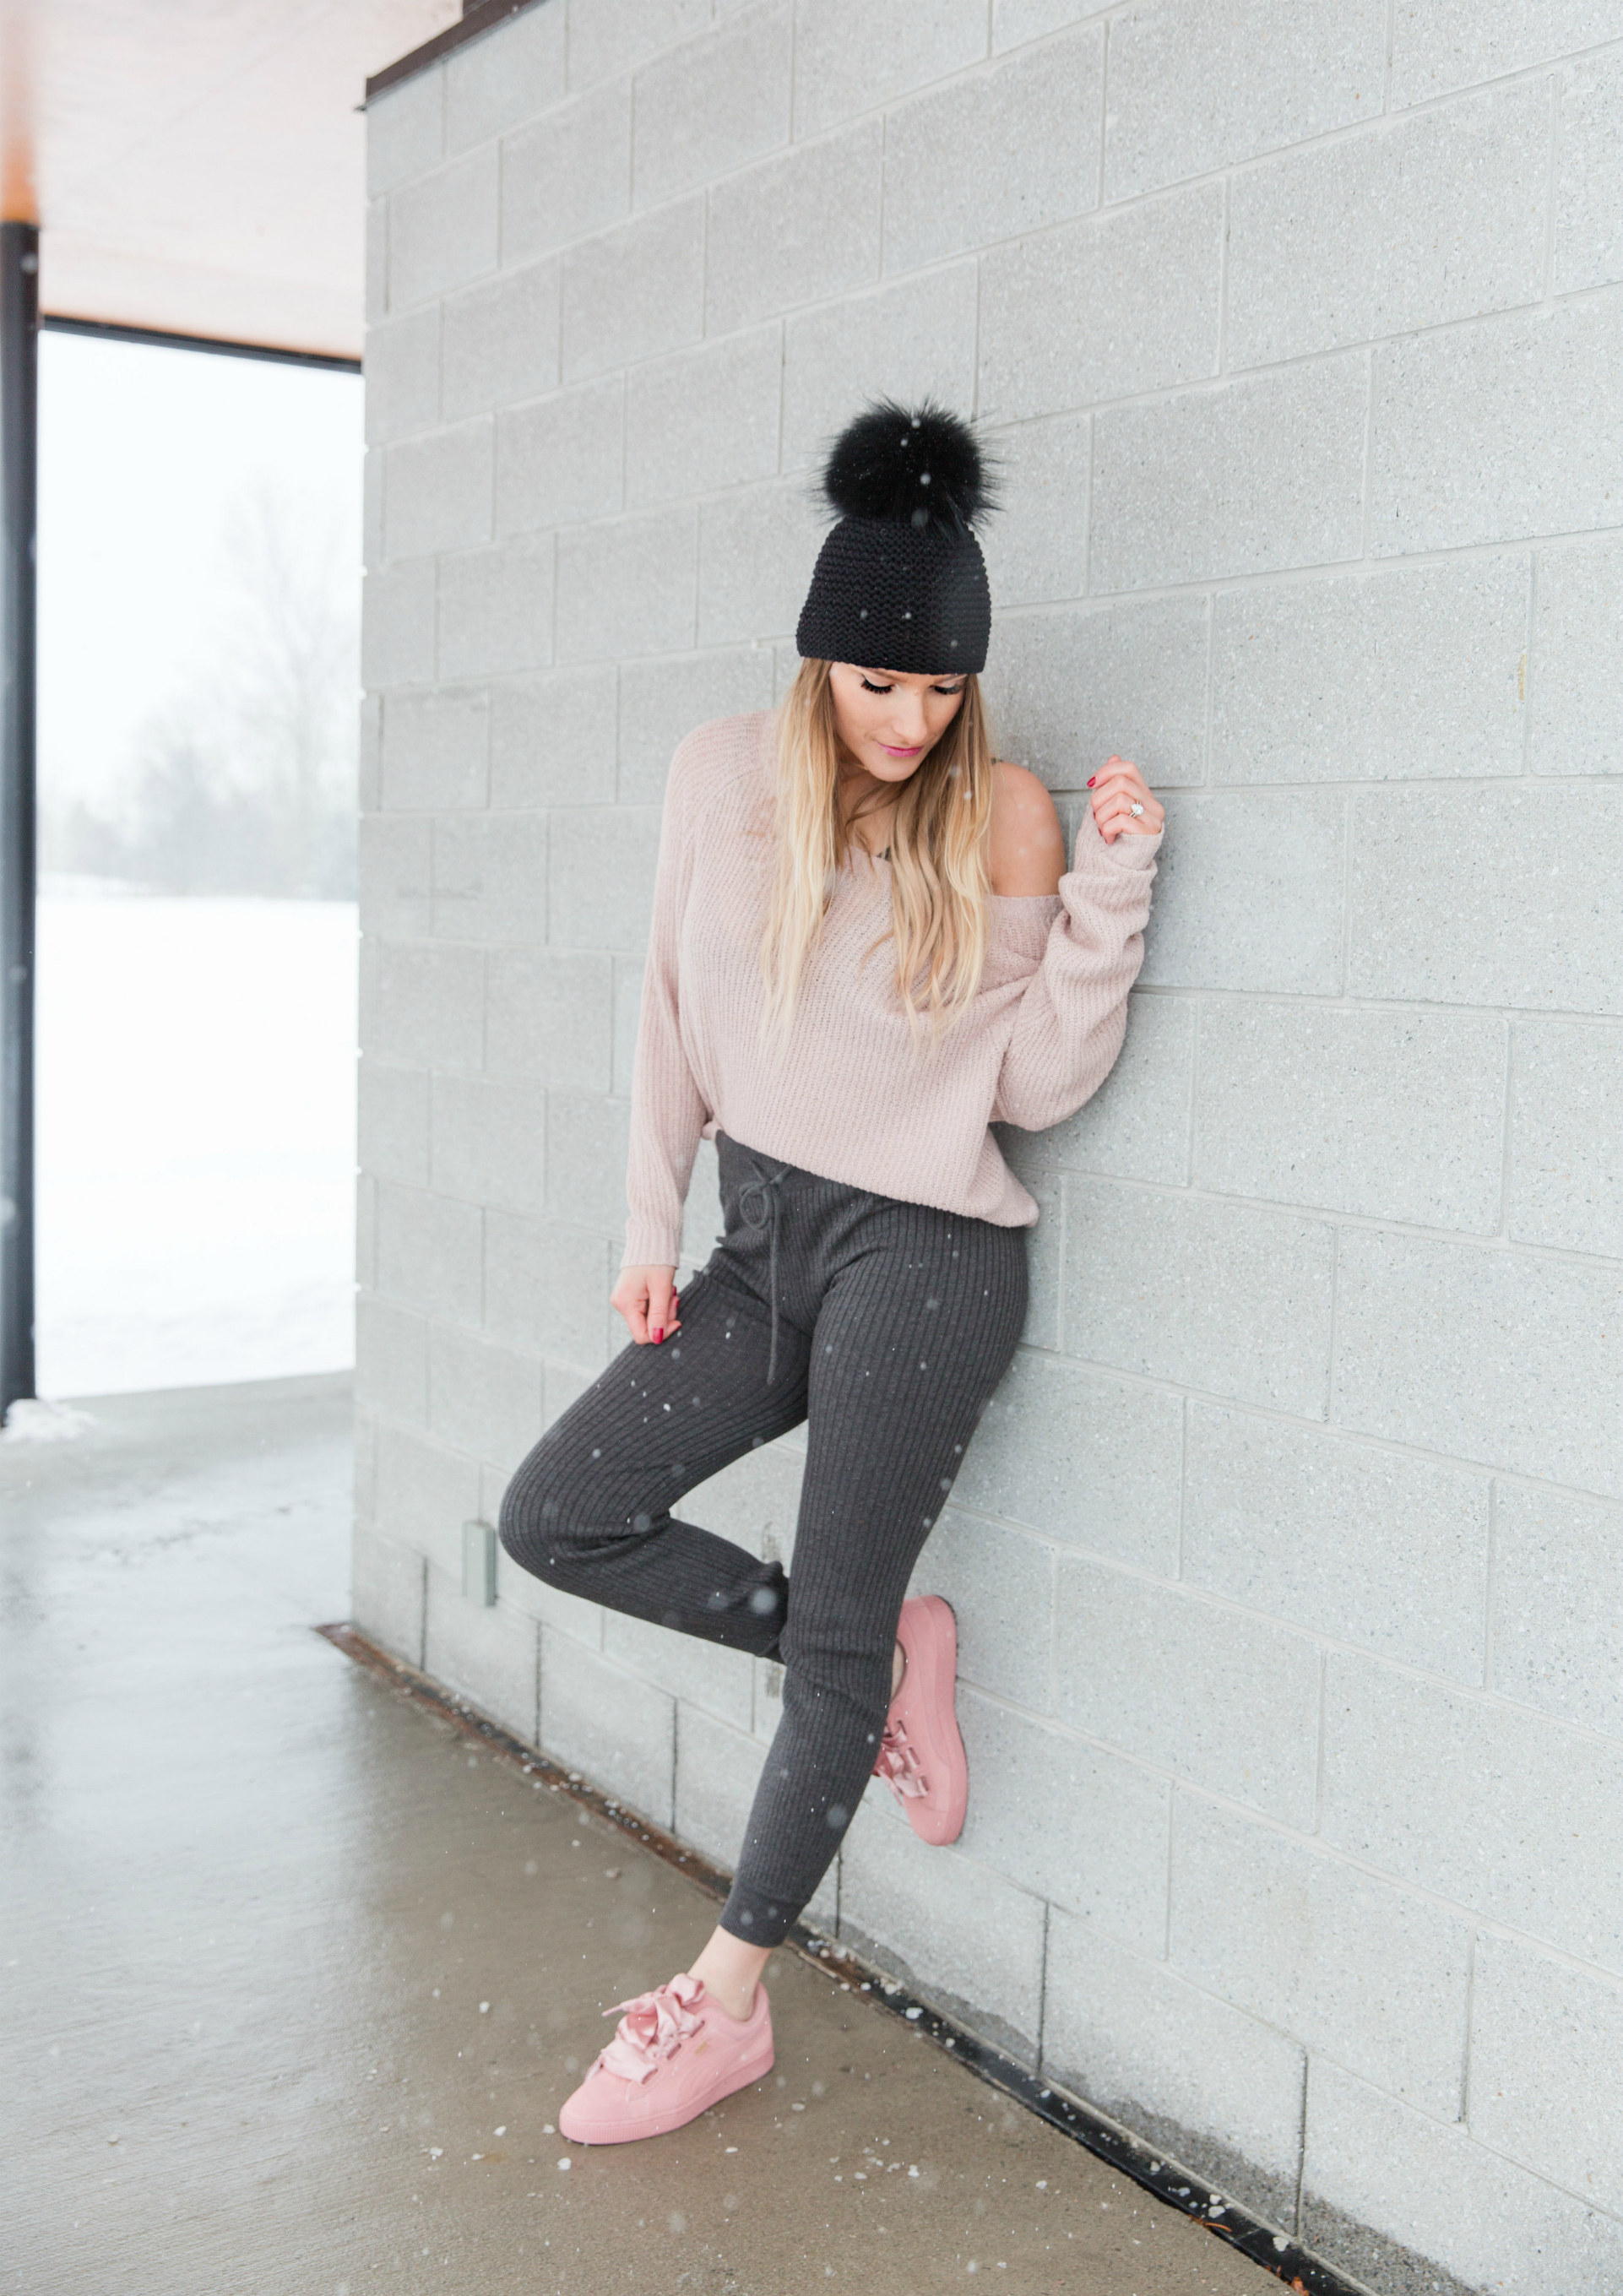 life with aco, Ottawa fashion blogger, Amanda conquer, fur pom hat, pink sneakers